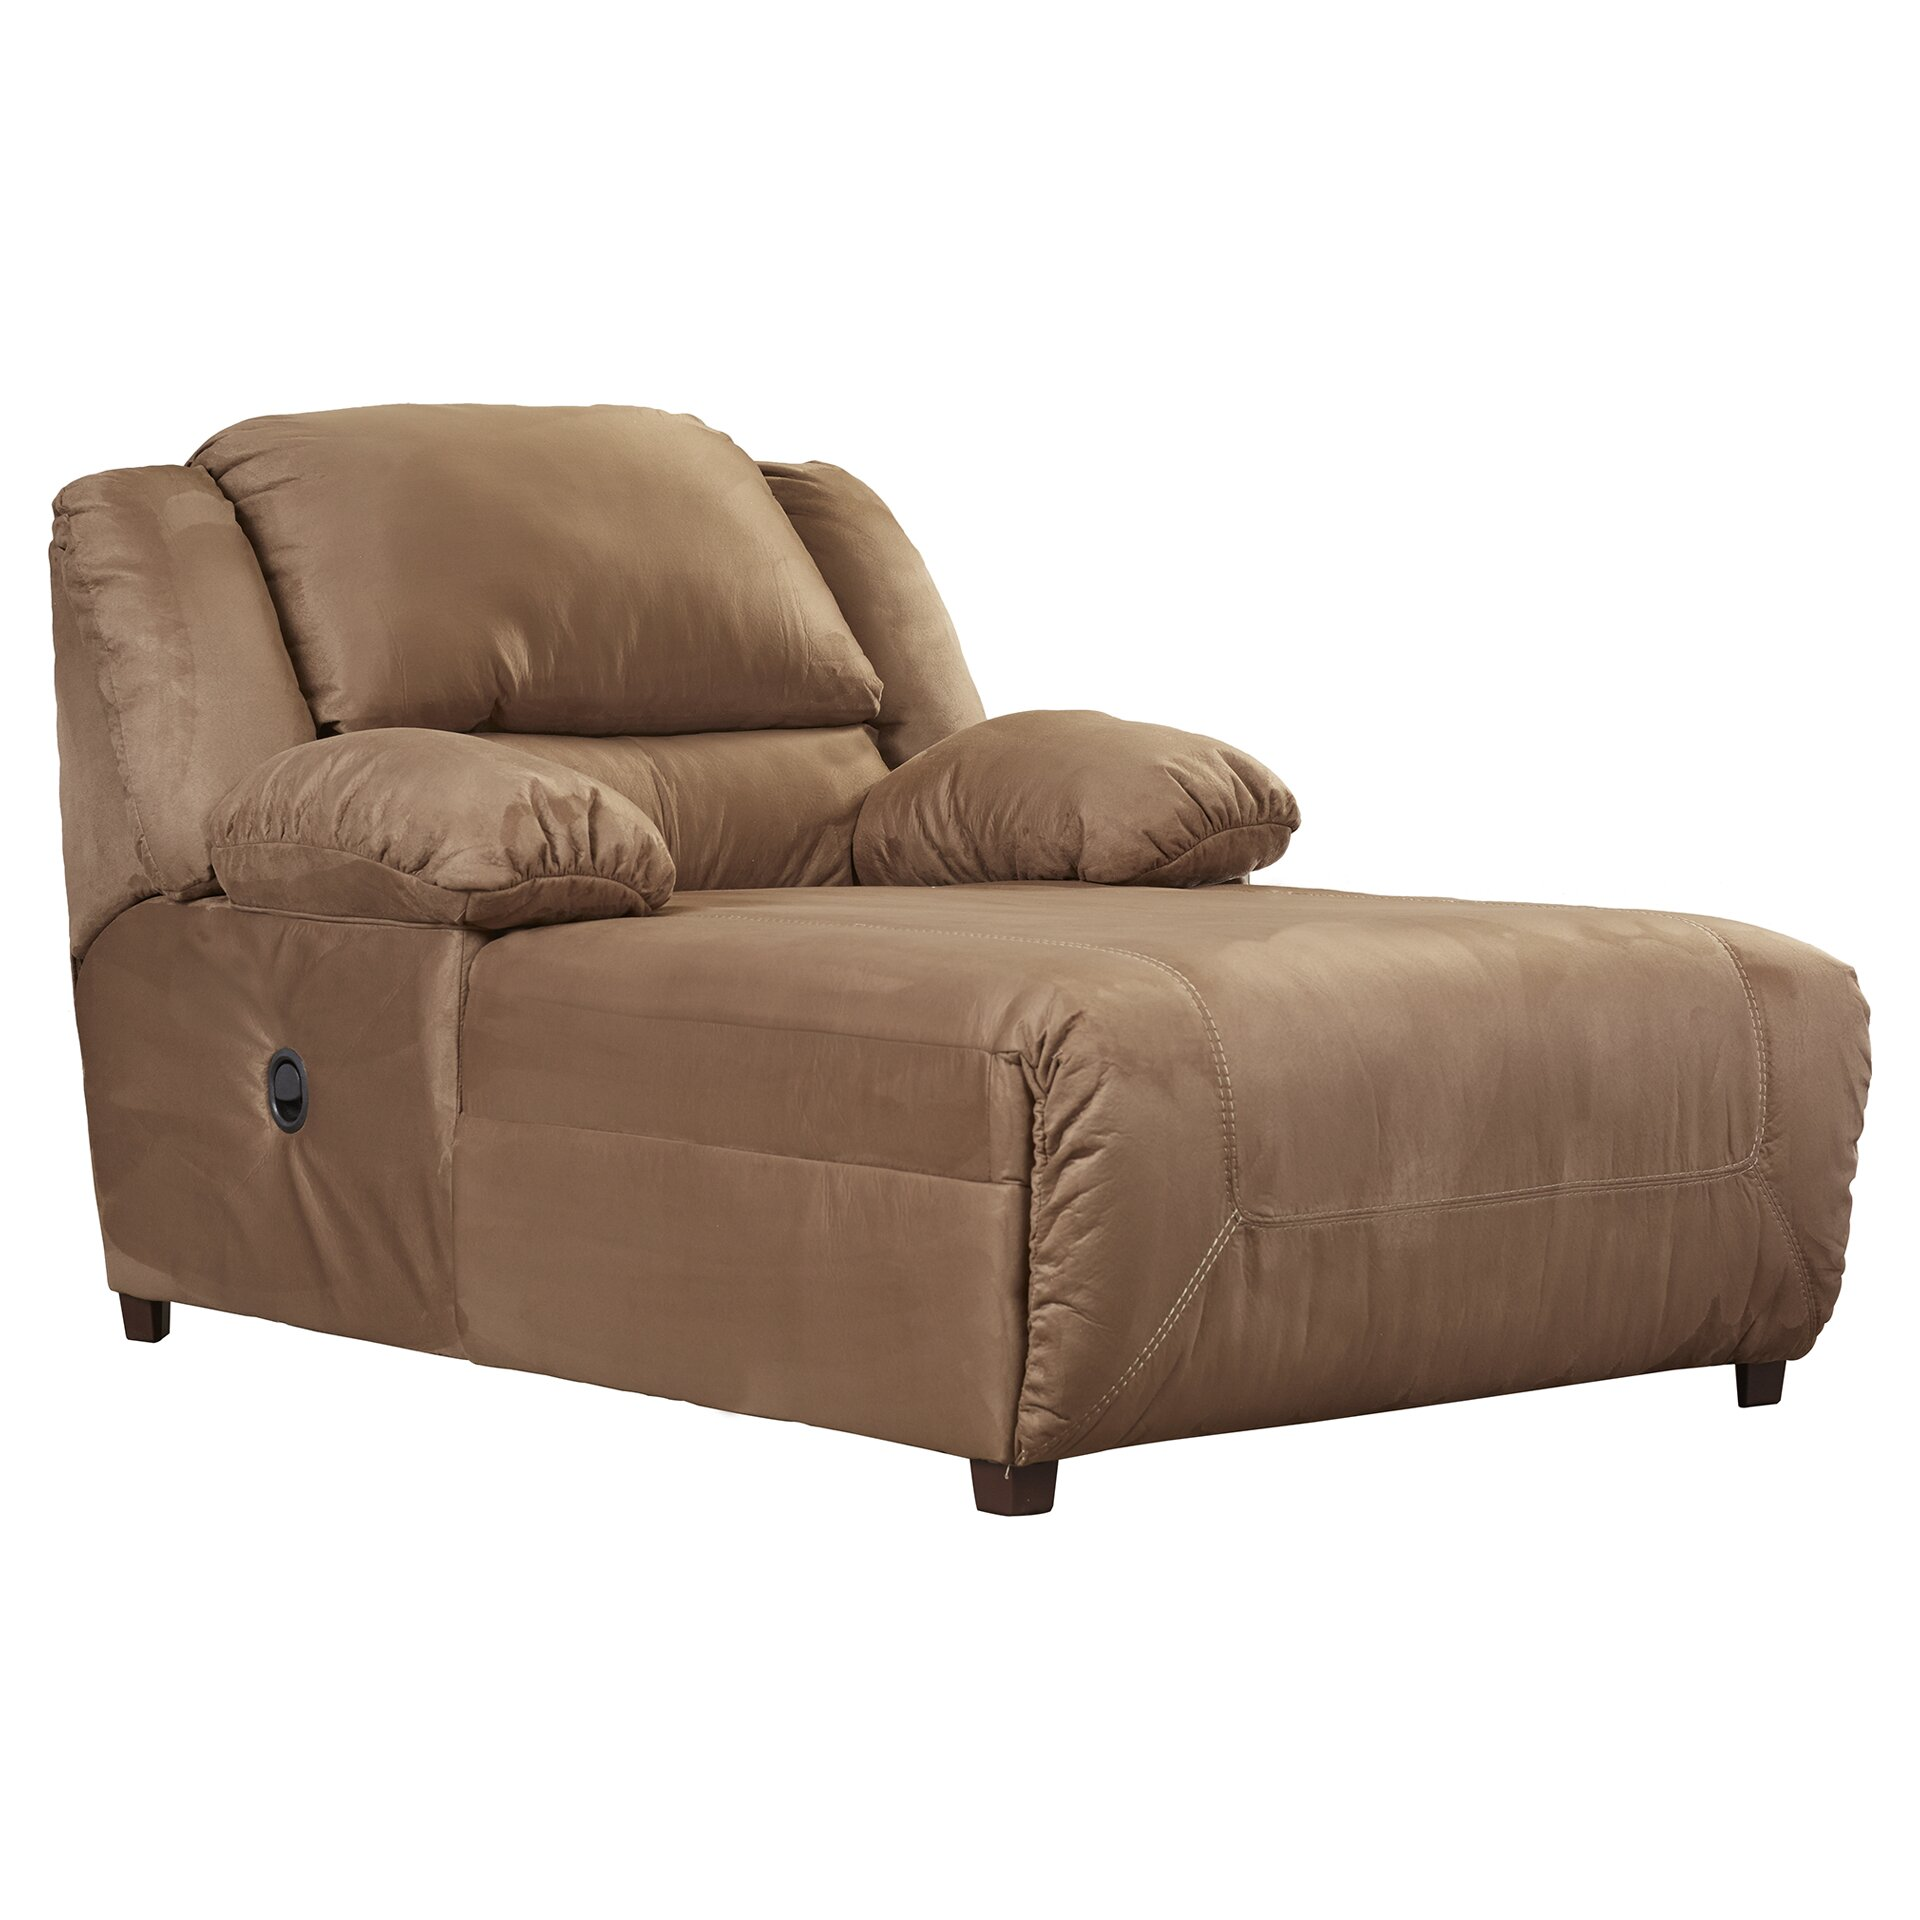 Chaise lounge recliner chaise lounge chairs indoors for Catnapper jackpot reclining chaise 3989